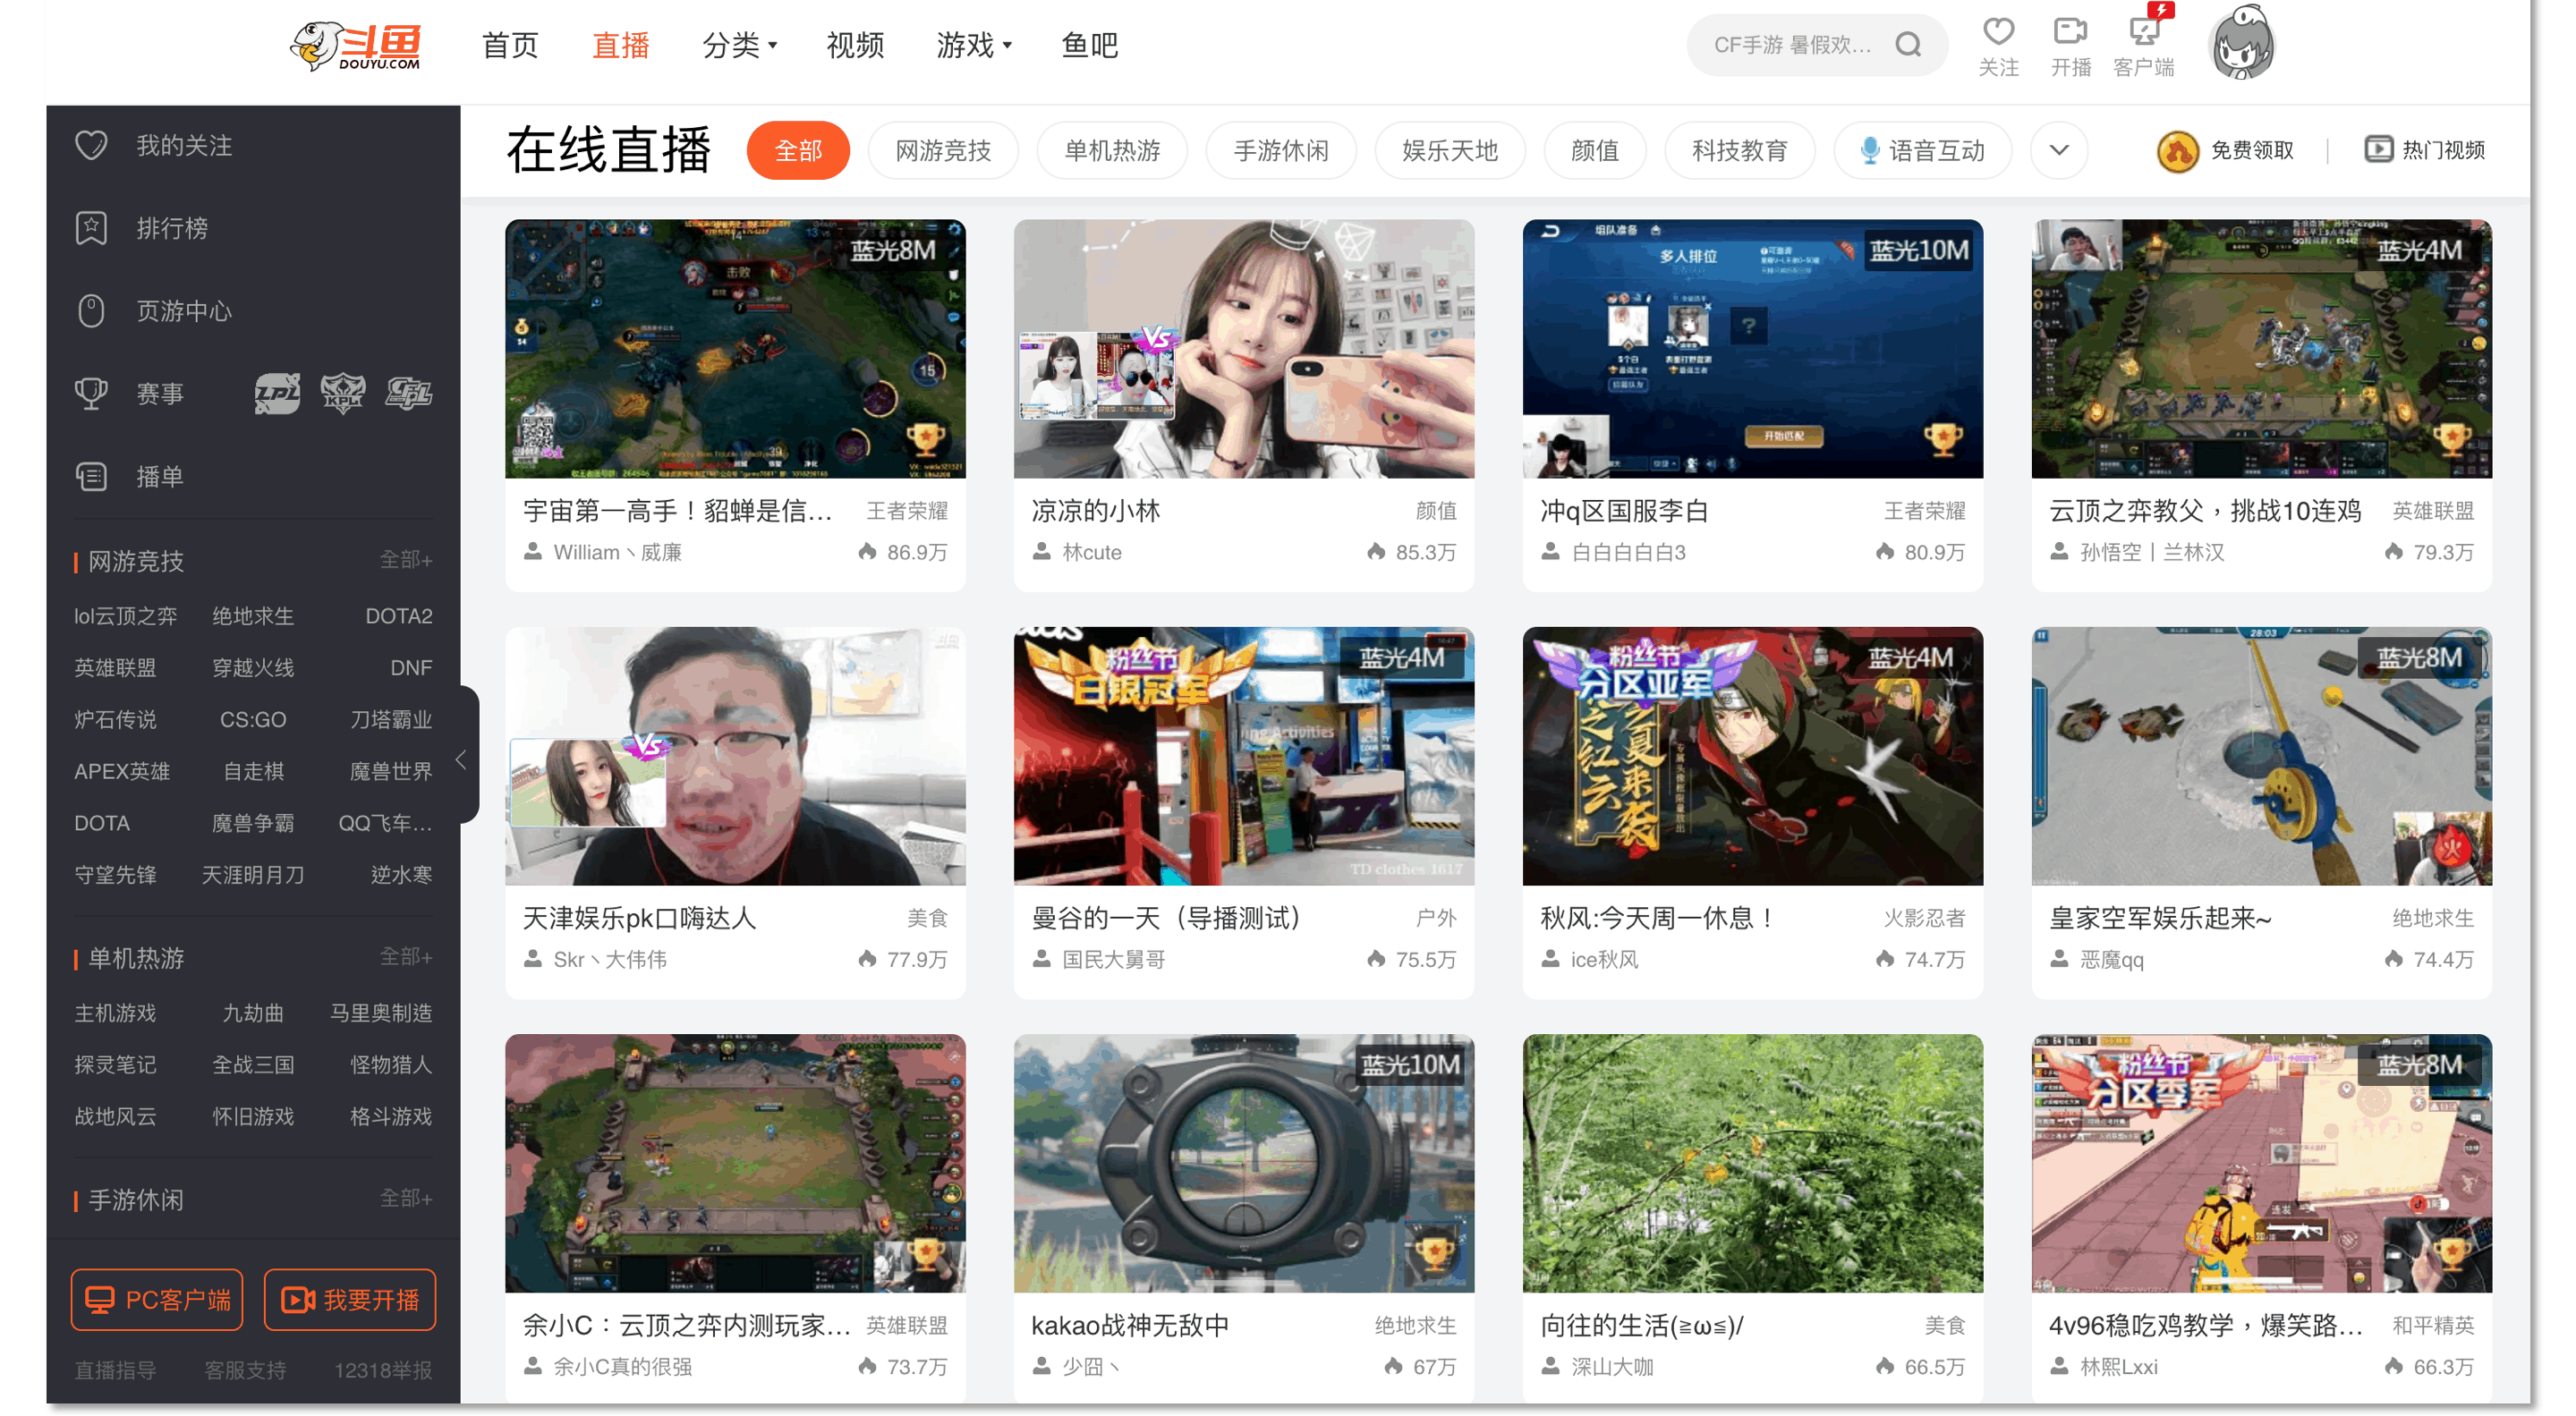 Live Streaming has been all the rage for the past few years in China. Douyu shown above has been so successful it recently listed on the Nasdaq stock exchange in July 2019!